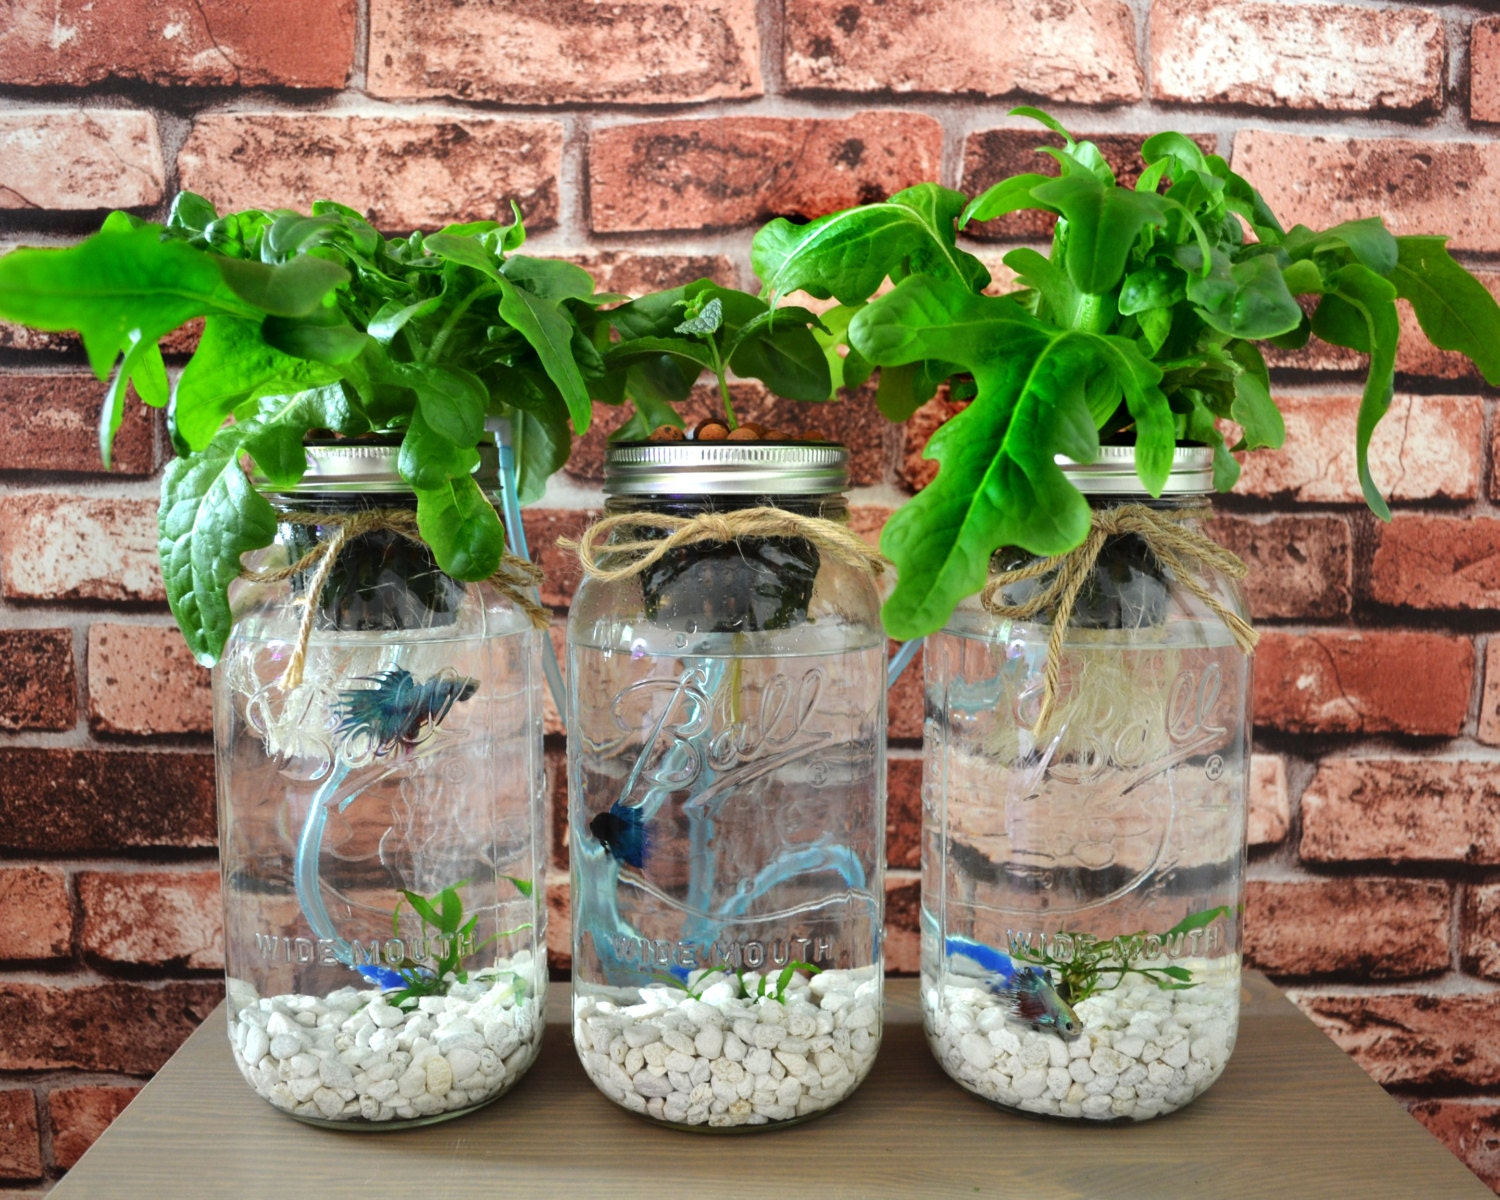 3 mason jar aquaponics kit build your own hydroponics herb. Black Bedroom Furniture Sets. Home Design Ideas